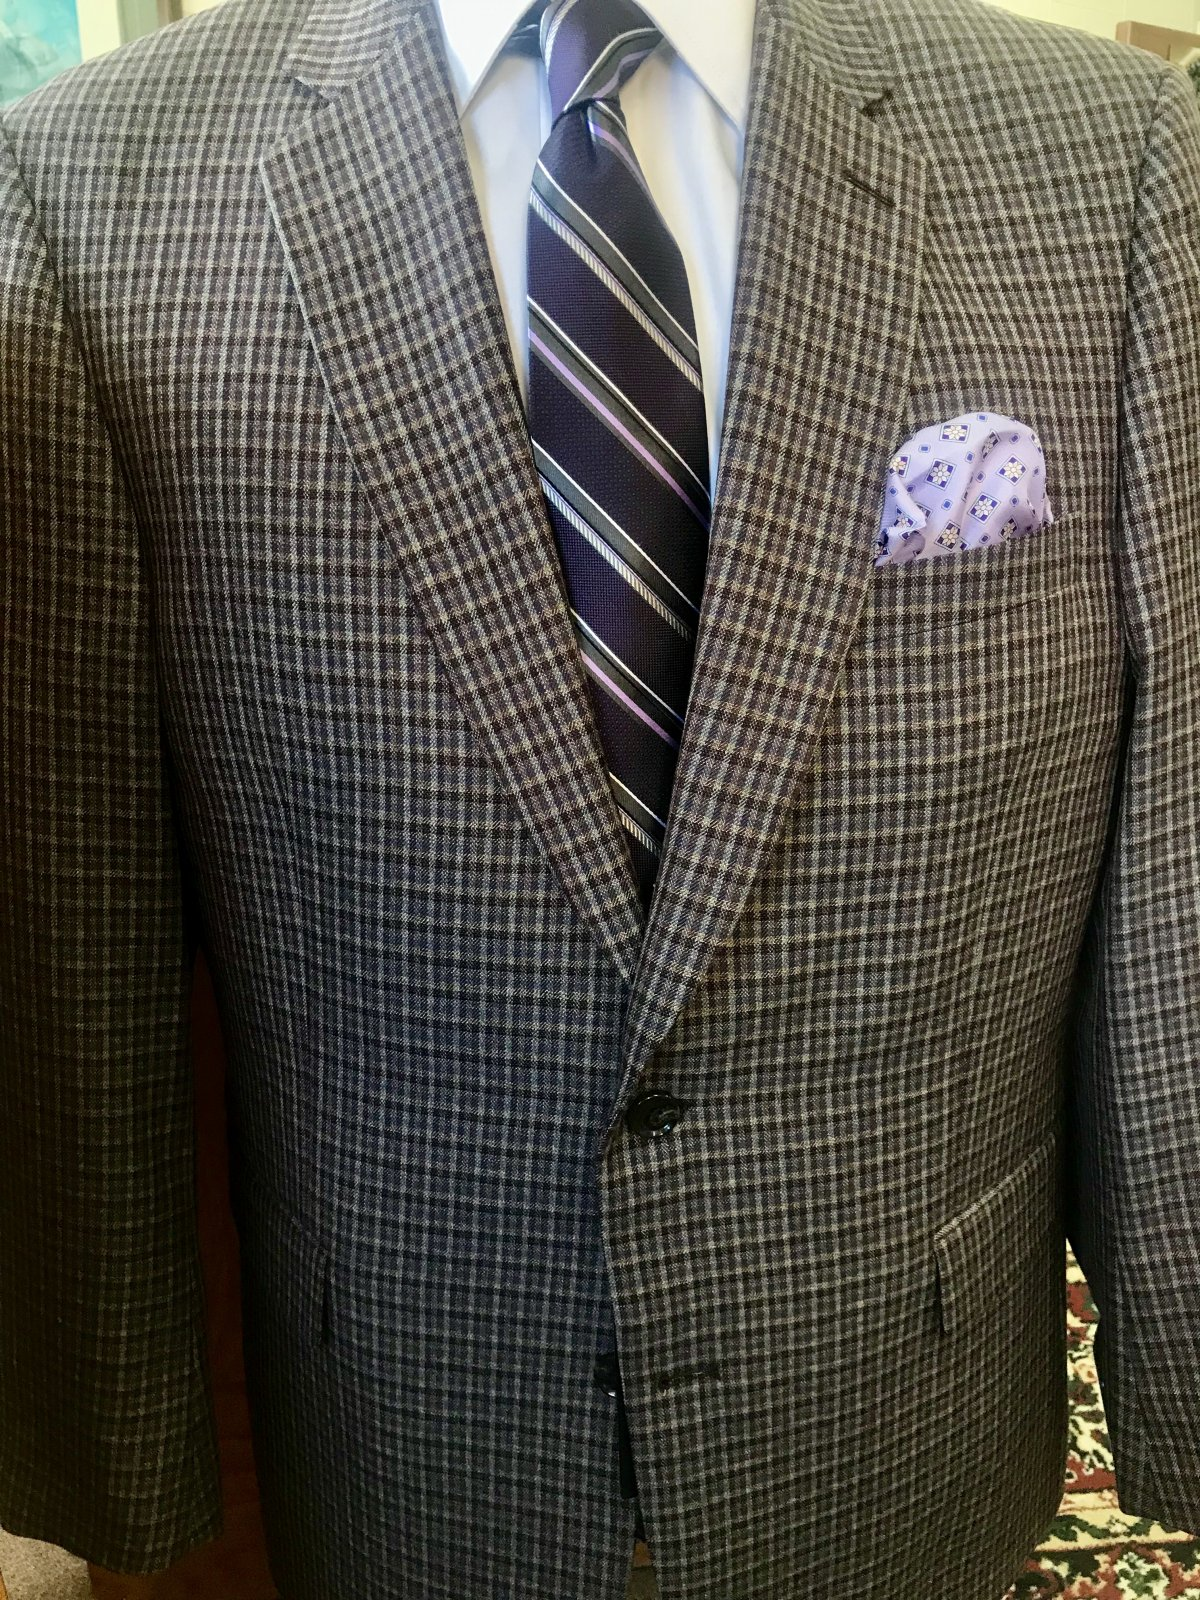 Jean-Paul Germain Sportcoat 1329